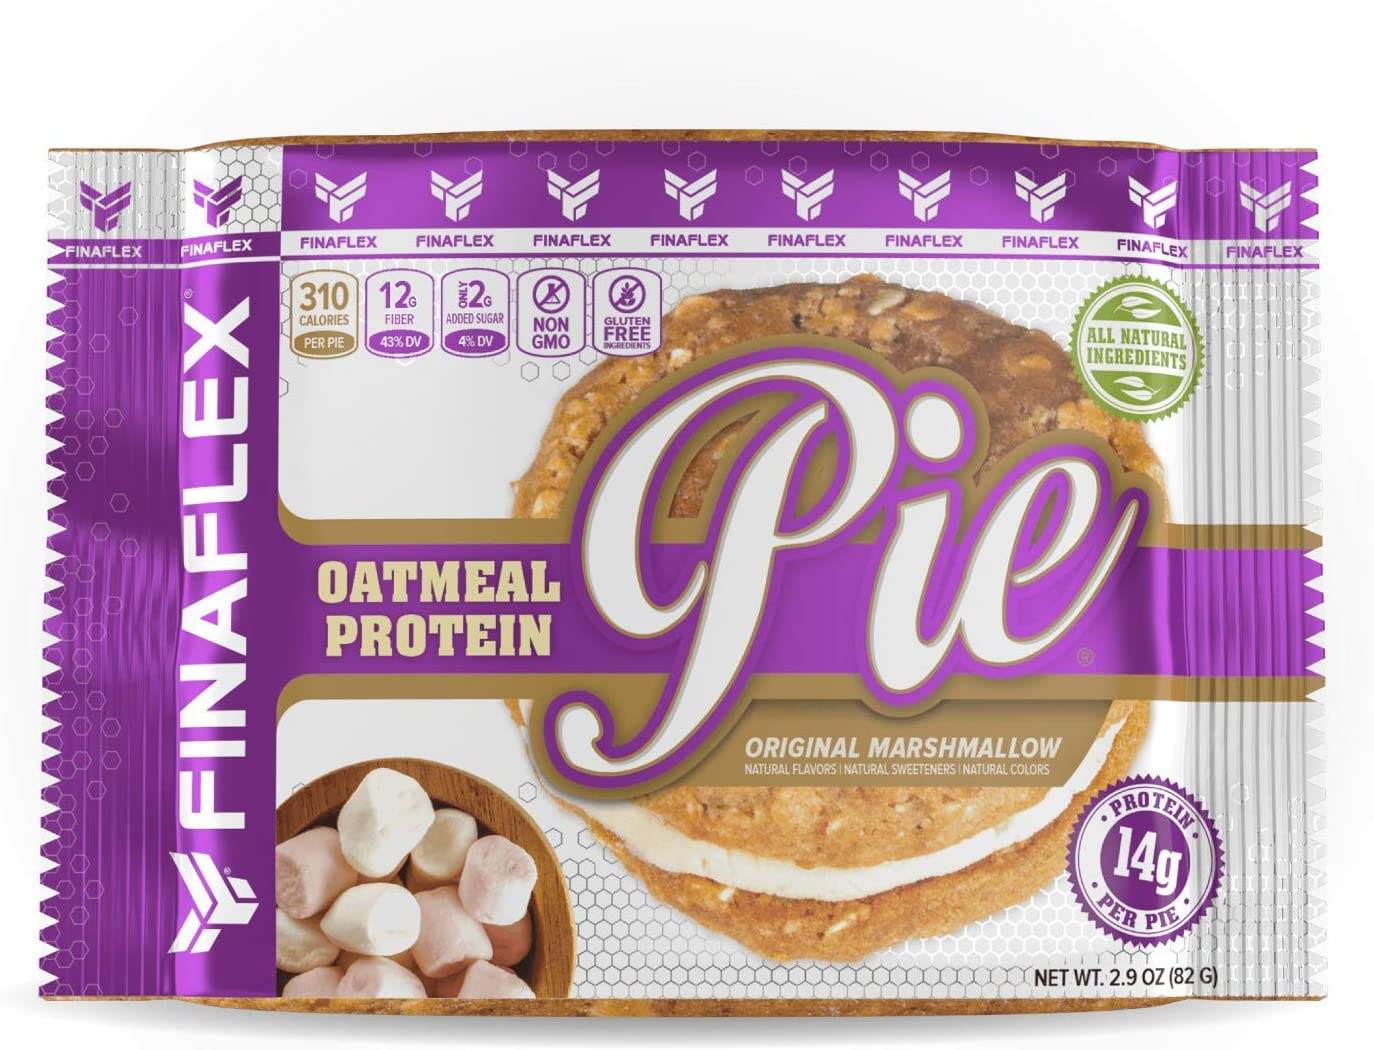 Oatmeal Protein Pie, All-Natural Soft and Chewy Non GMO Snack, Gluten Free, Kosher, 14g Protein, 12g Fiber, Only 8 Sugars, Creamy Marshmallow Protein Filling, Perfect for Kids and Adults (Original)